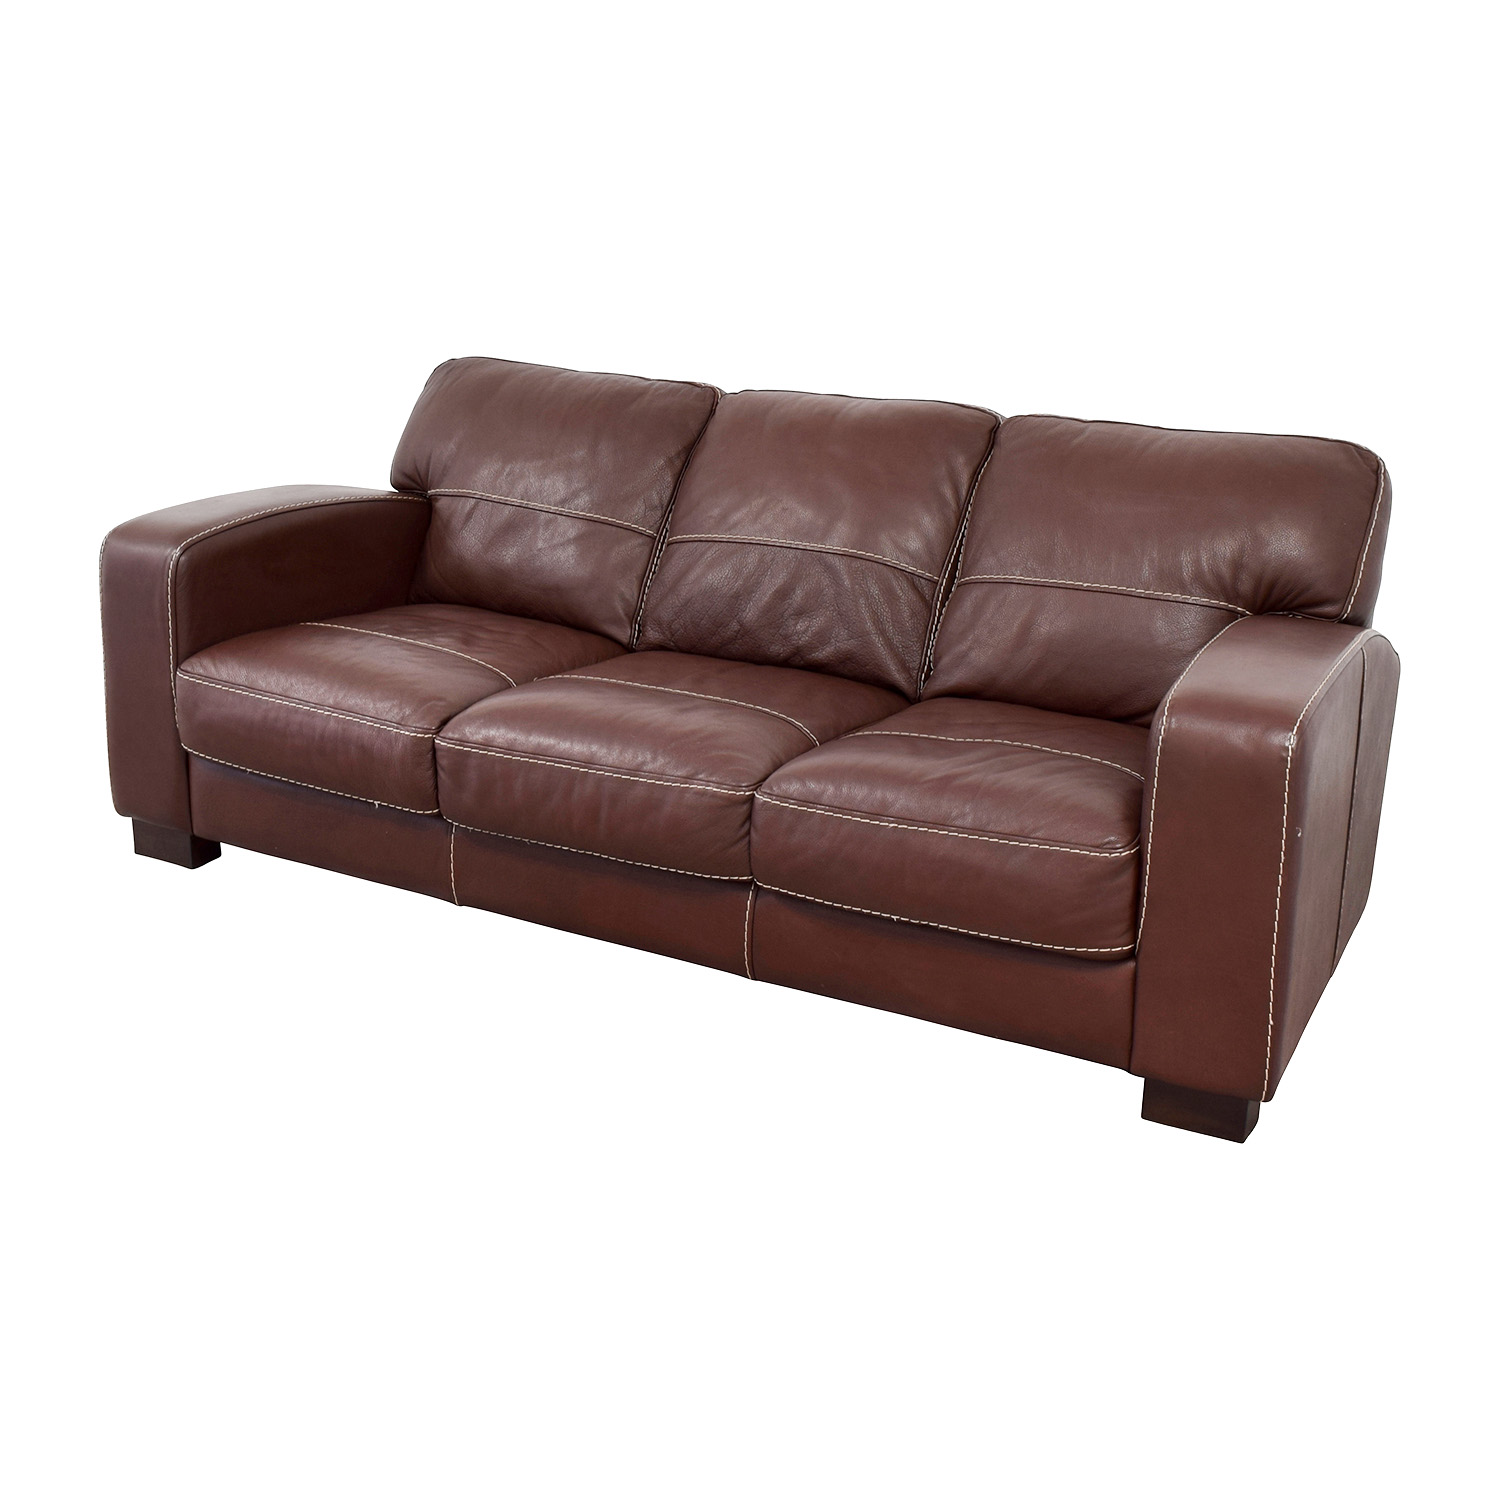 Great ... Bobs Furniture Bobs Furniture Antonio Brown Leather Sofa For Sale ...